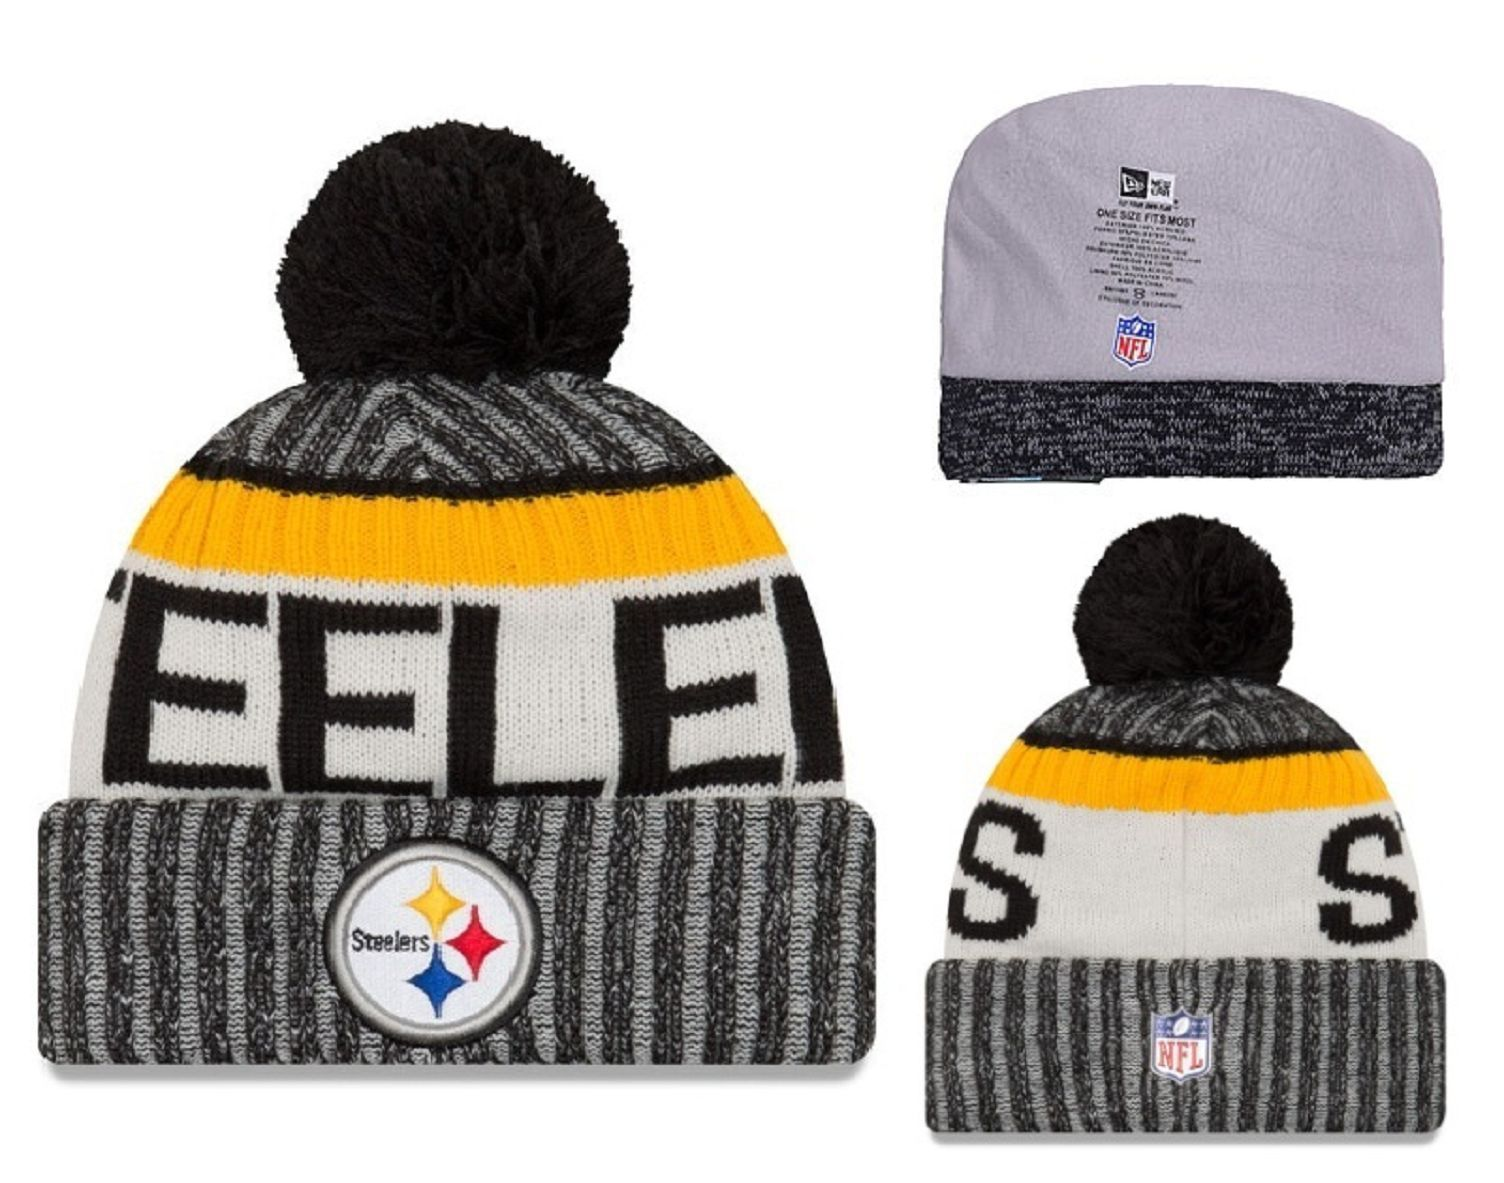 05733220 Pin by gotfashiongoods on Skin care | Beanie, Pittsburgh steelers ...